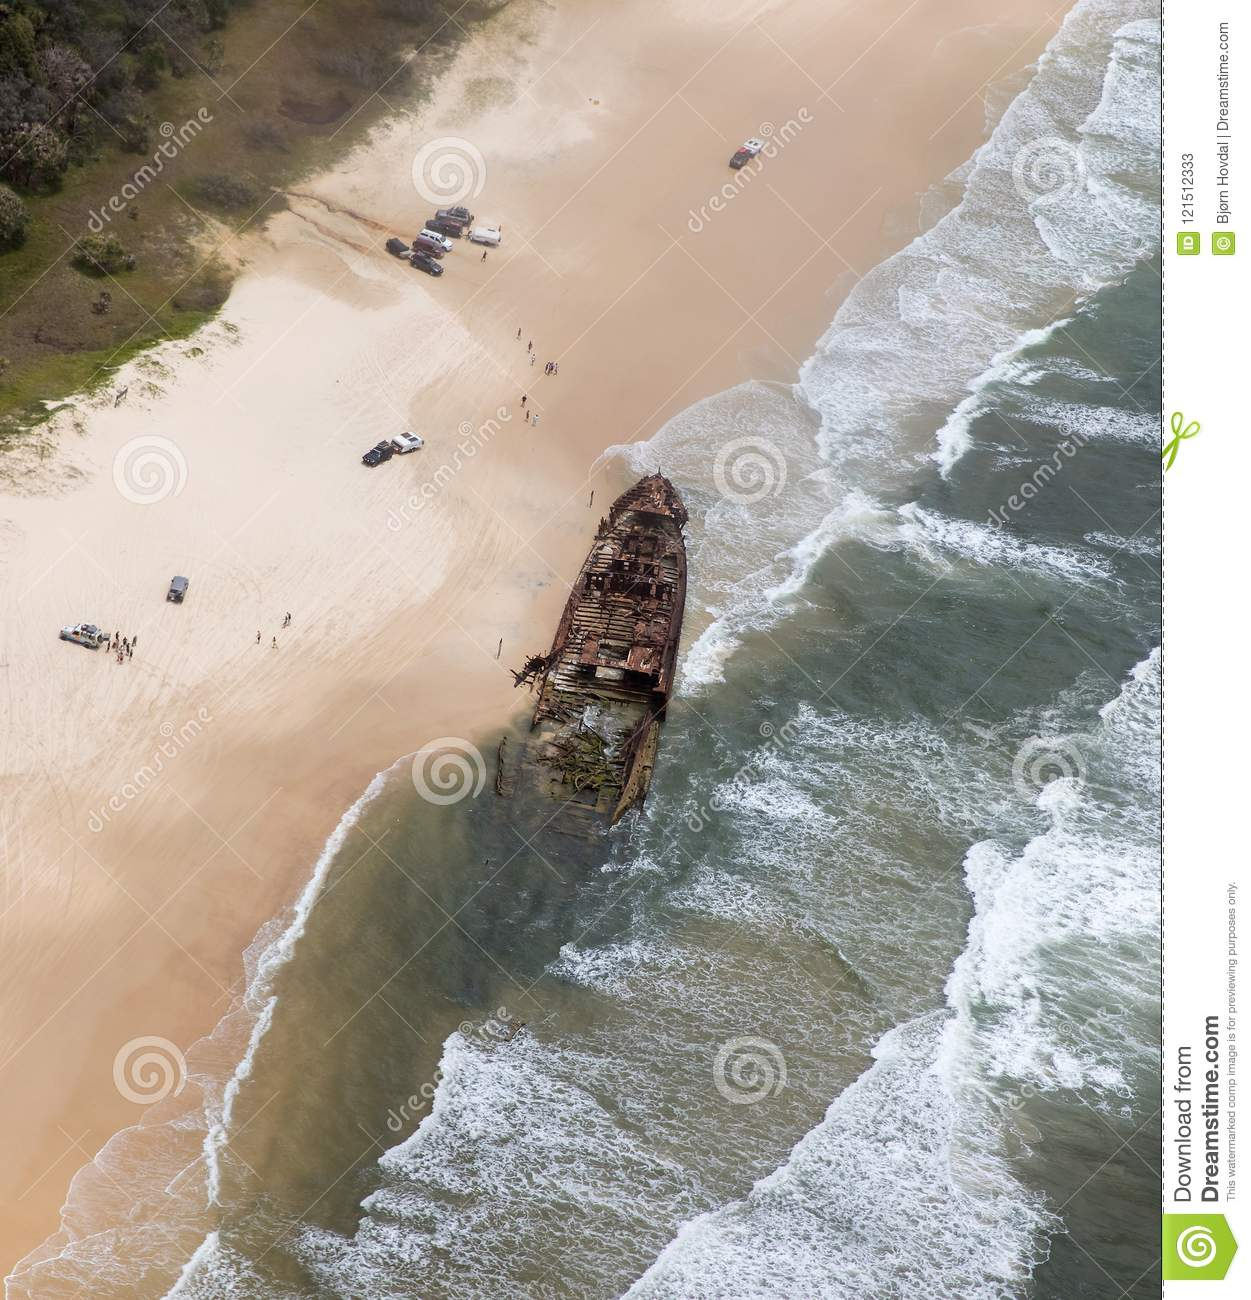 Download Aerial Photo Of Fraser Island Ship Wreck. Stock Image - Image of near, waves: 121512333